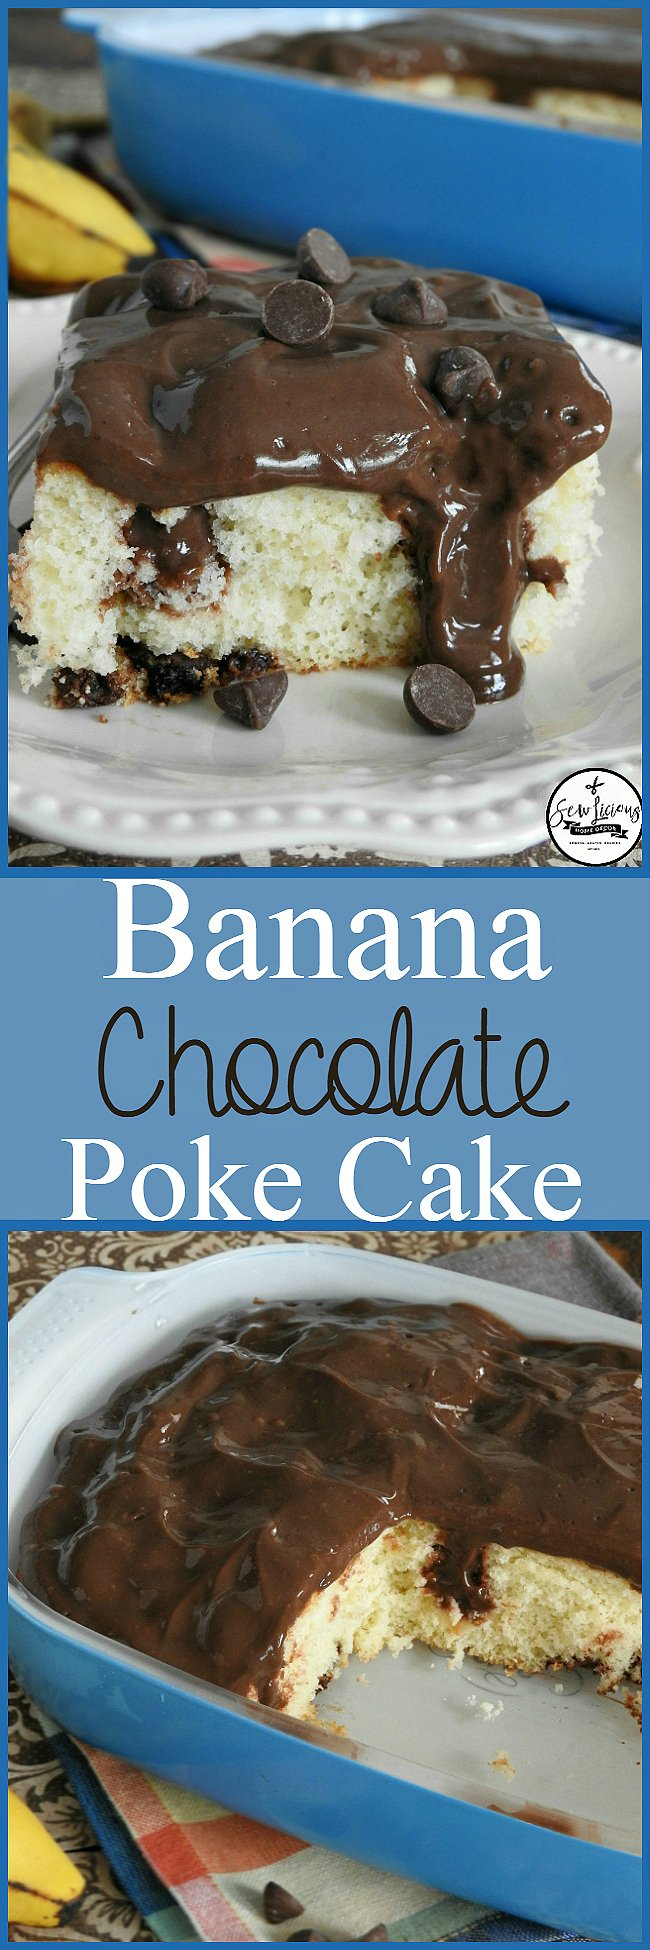 Banana poke cake with chocolate pudding. The perfect two combinations.